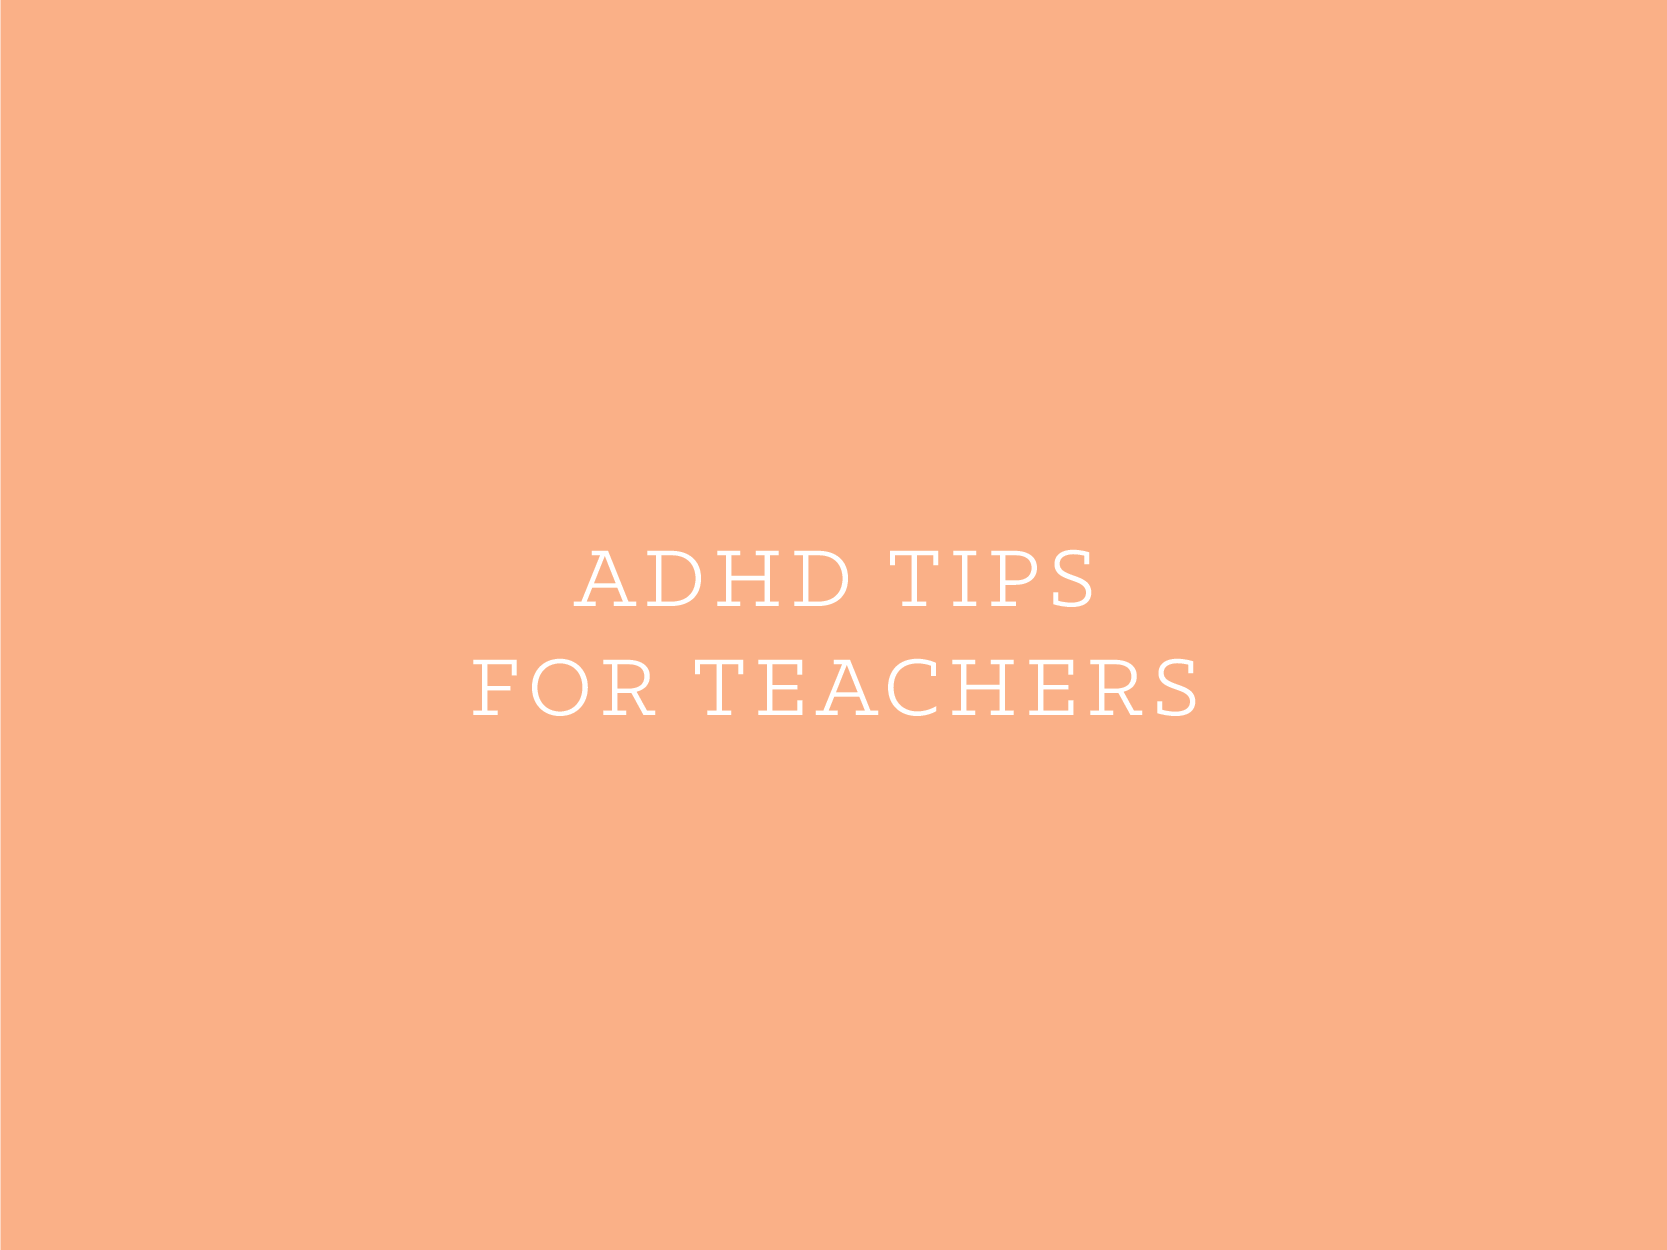 ADHD Tips for Teachers-ENG.png